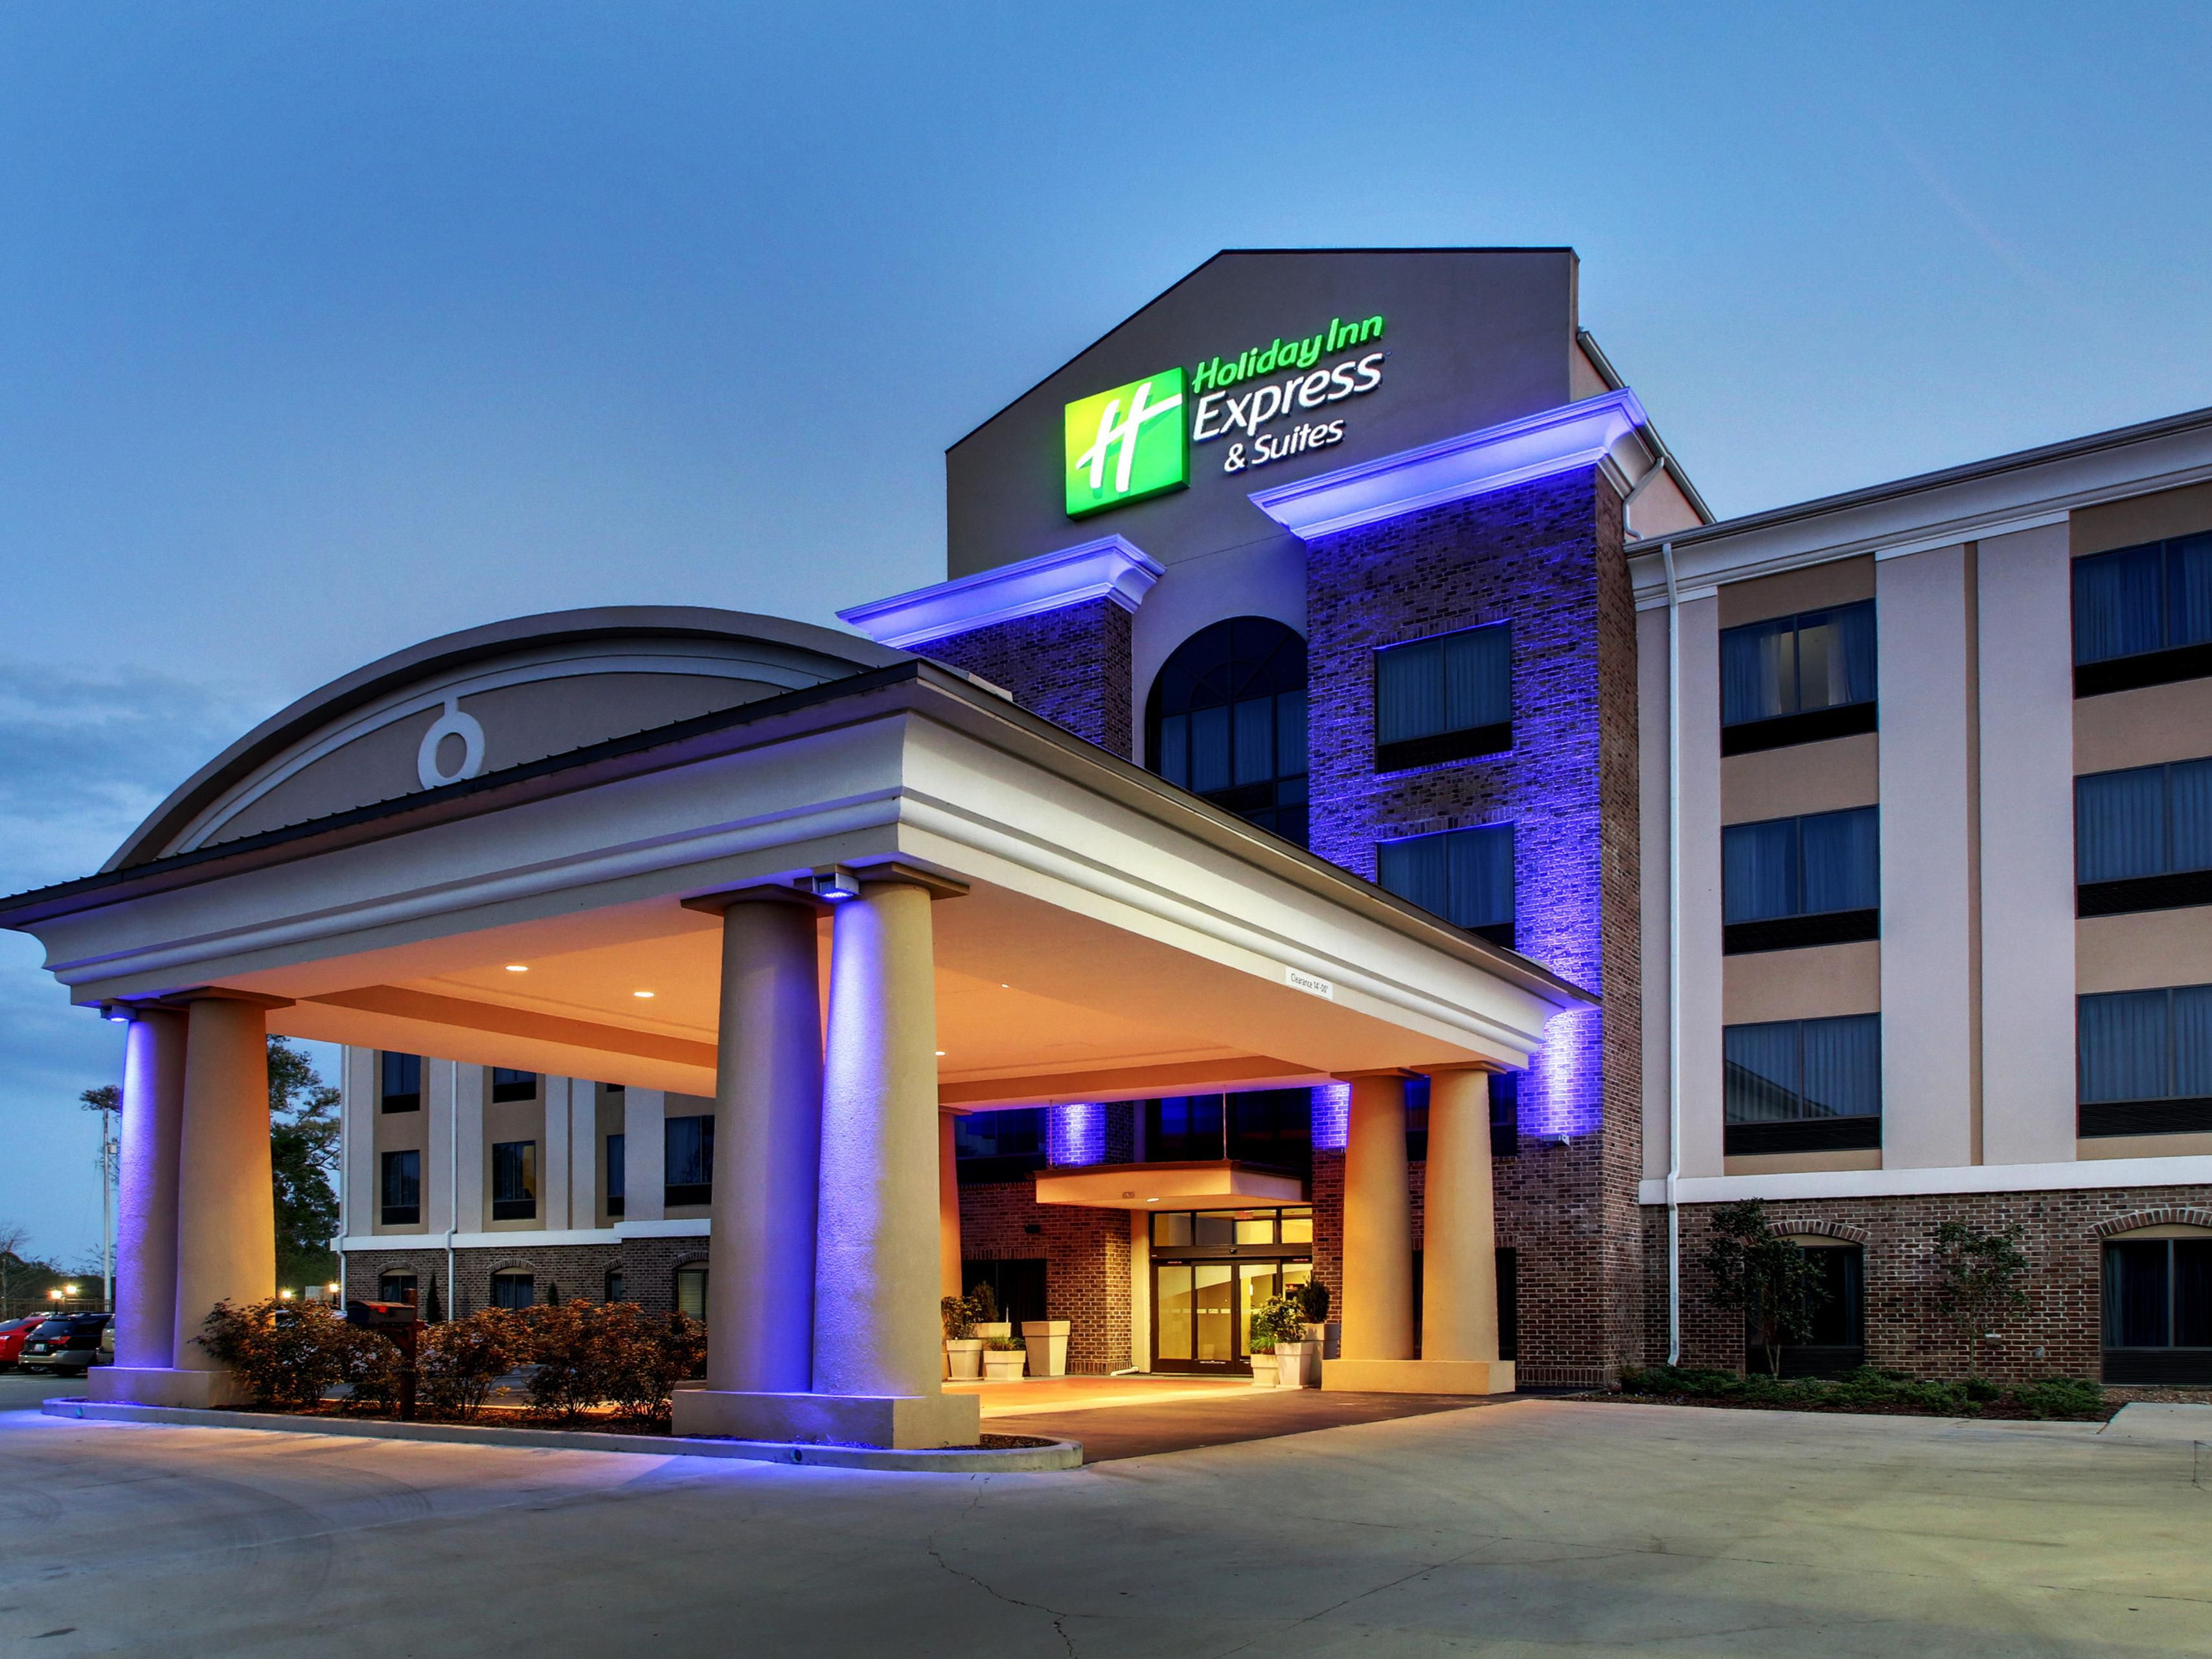 Come on in to the Holiday Inn Express -Natchez